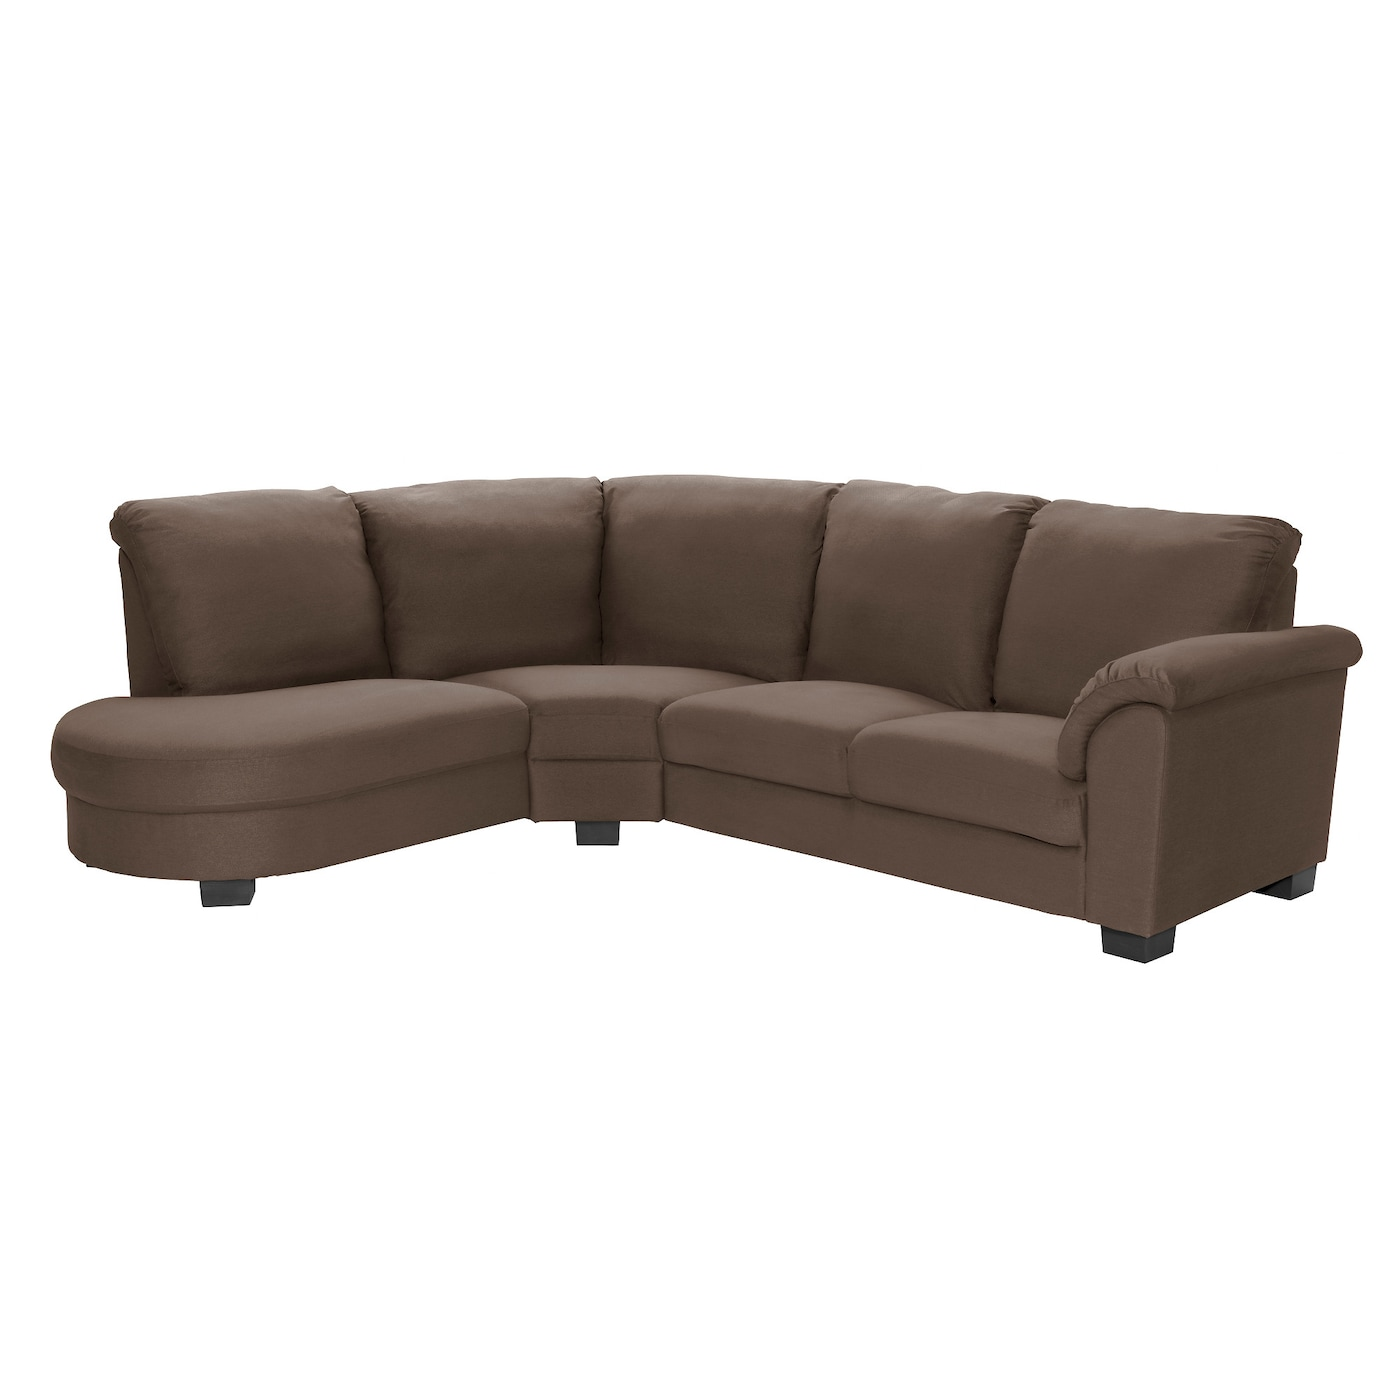 Divani Ikea Tidafors : Tidafors corner sofa with arm right dansbo medium brown ikea